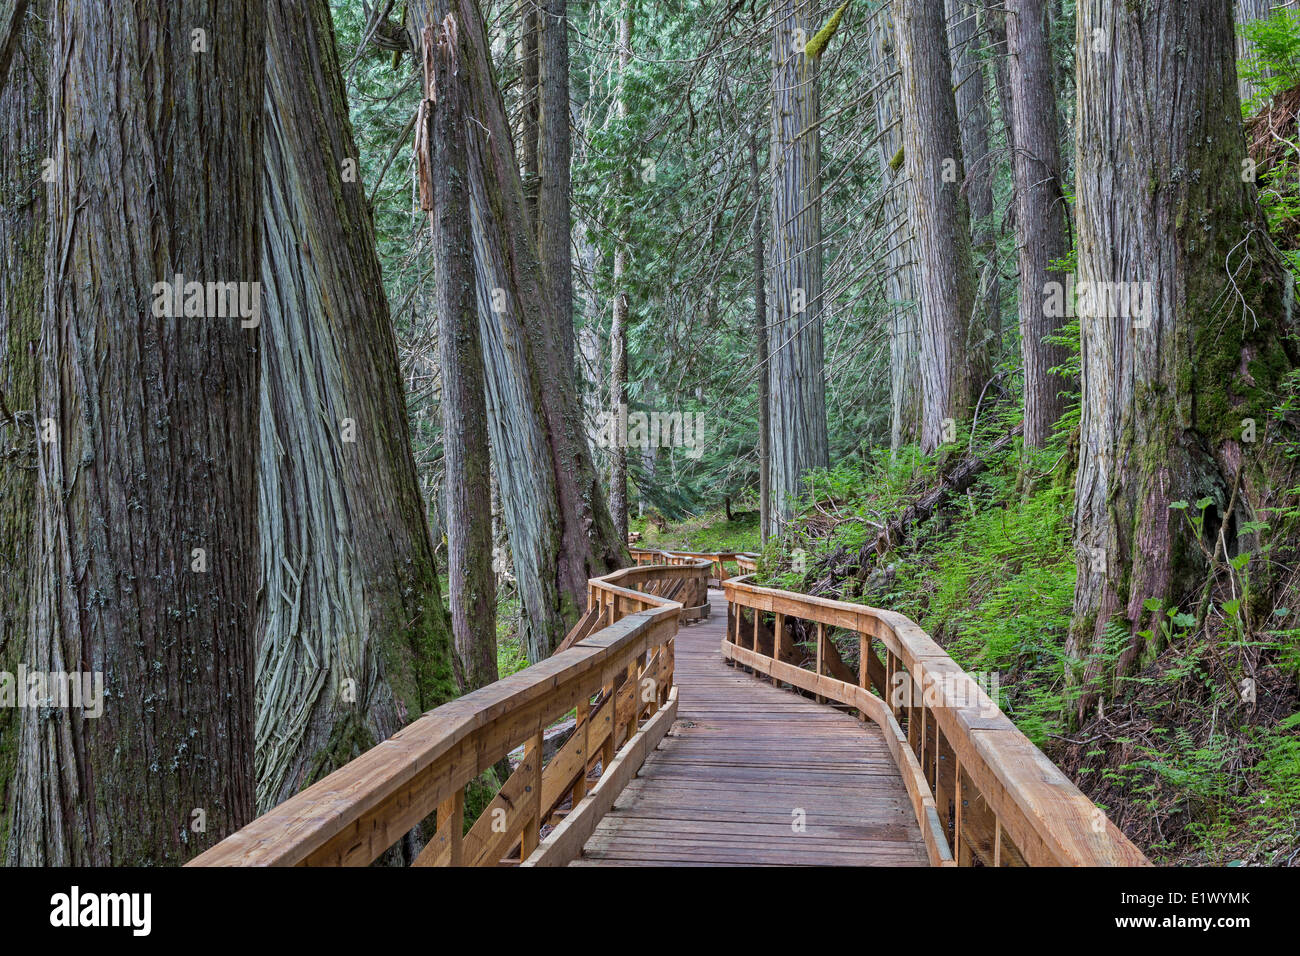 British Columbia, Canada, Ancient Forest, Inland Rainforest, Robson Valley, boardwalk, - Stock Image